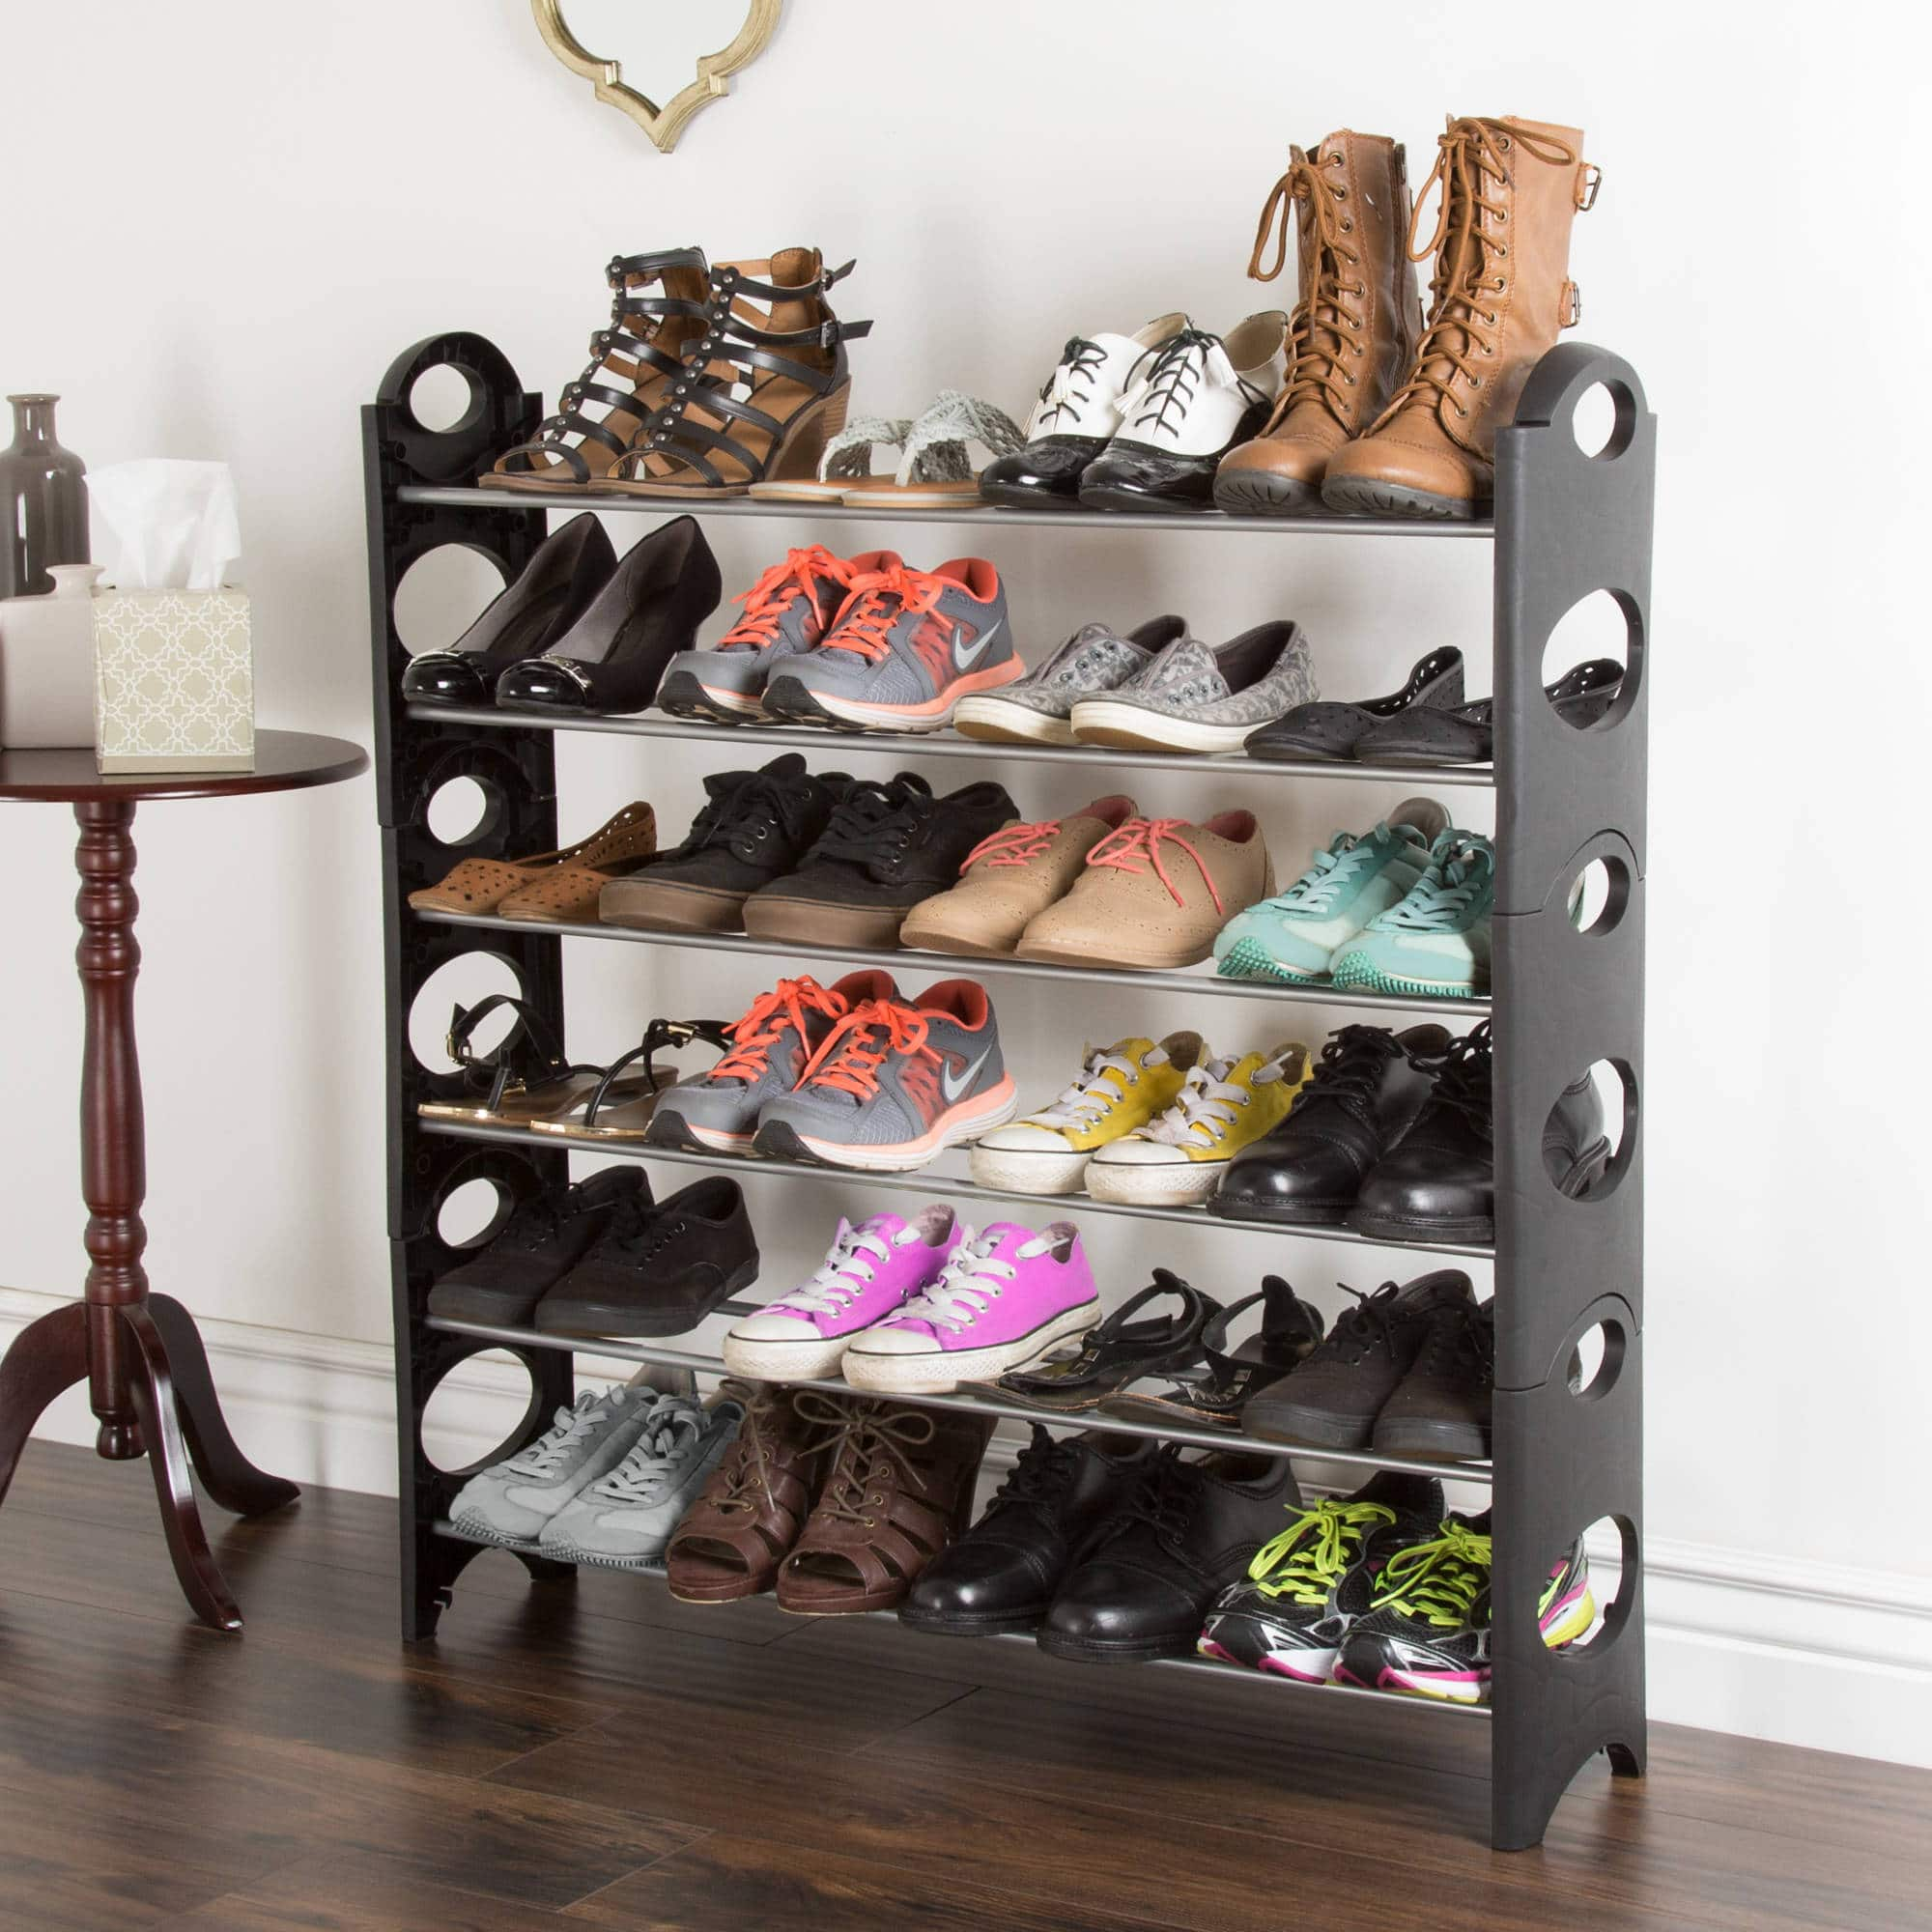 6-Tier Everyday Home Space Saver Shoe Rack $10 + Free Store Pickup at Walmart